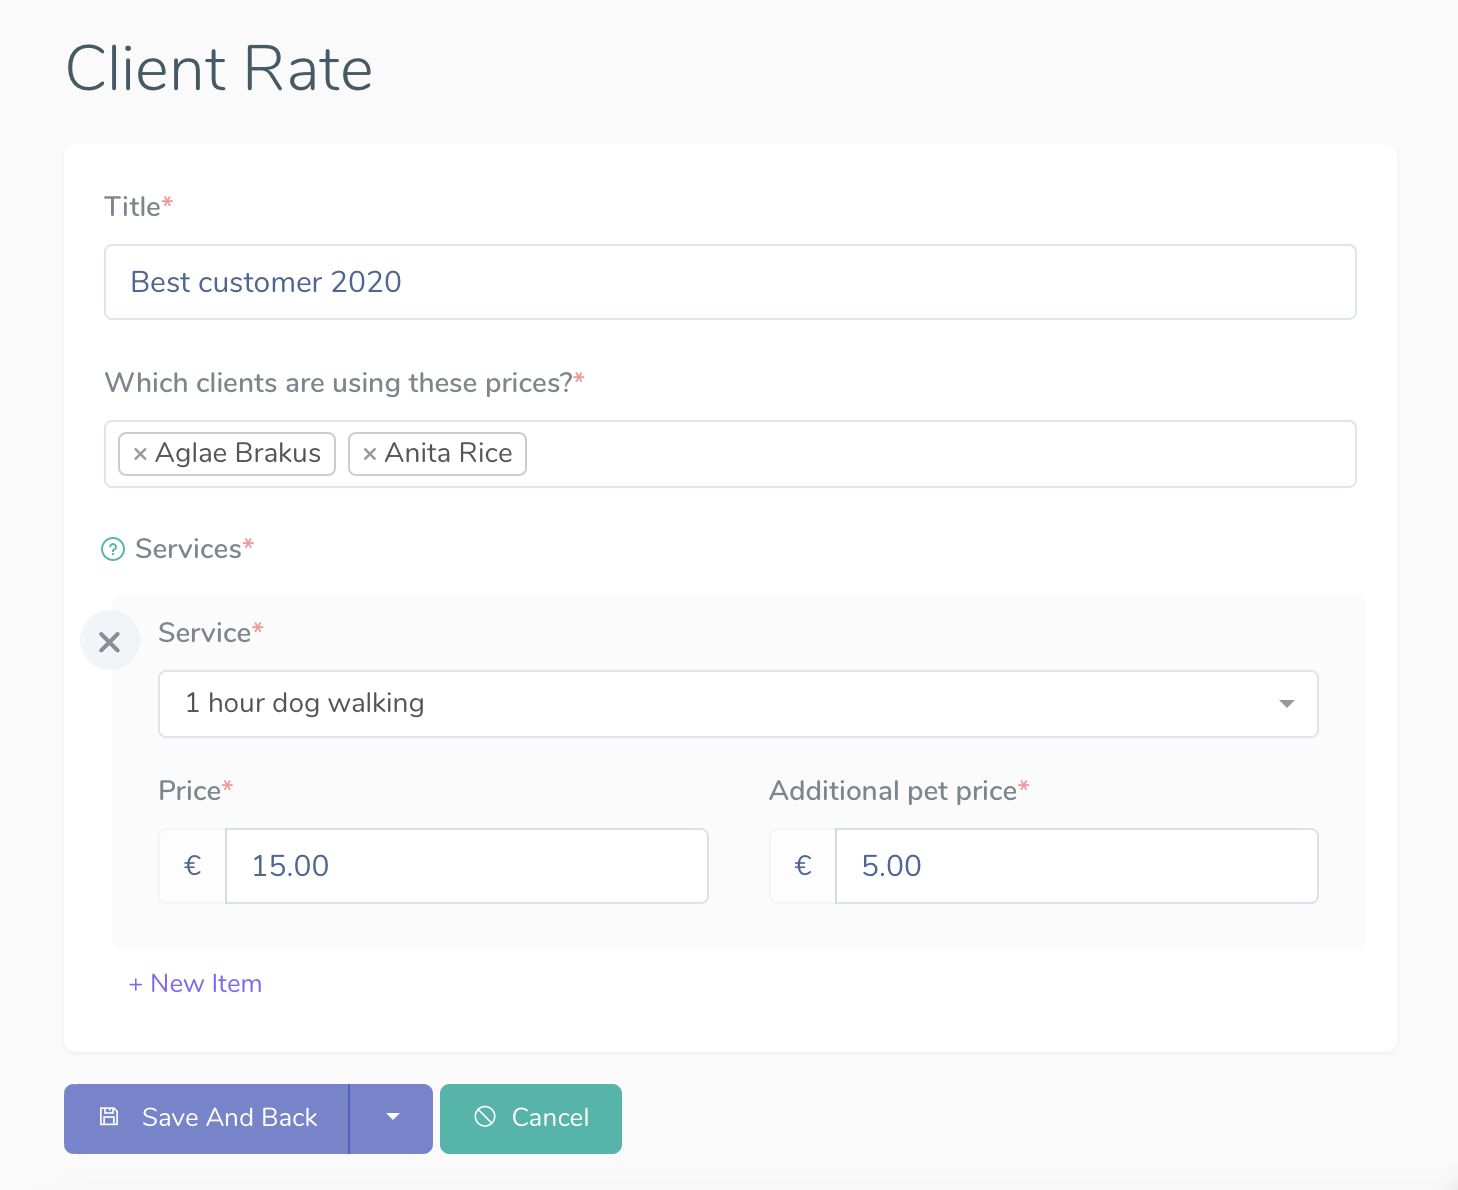 Client rate